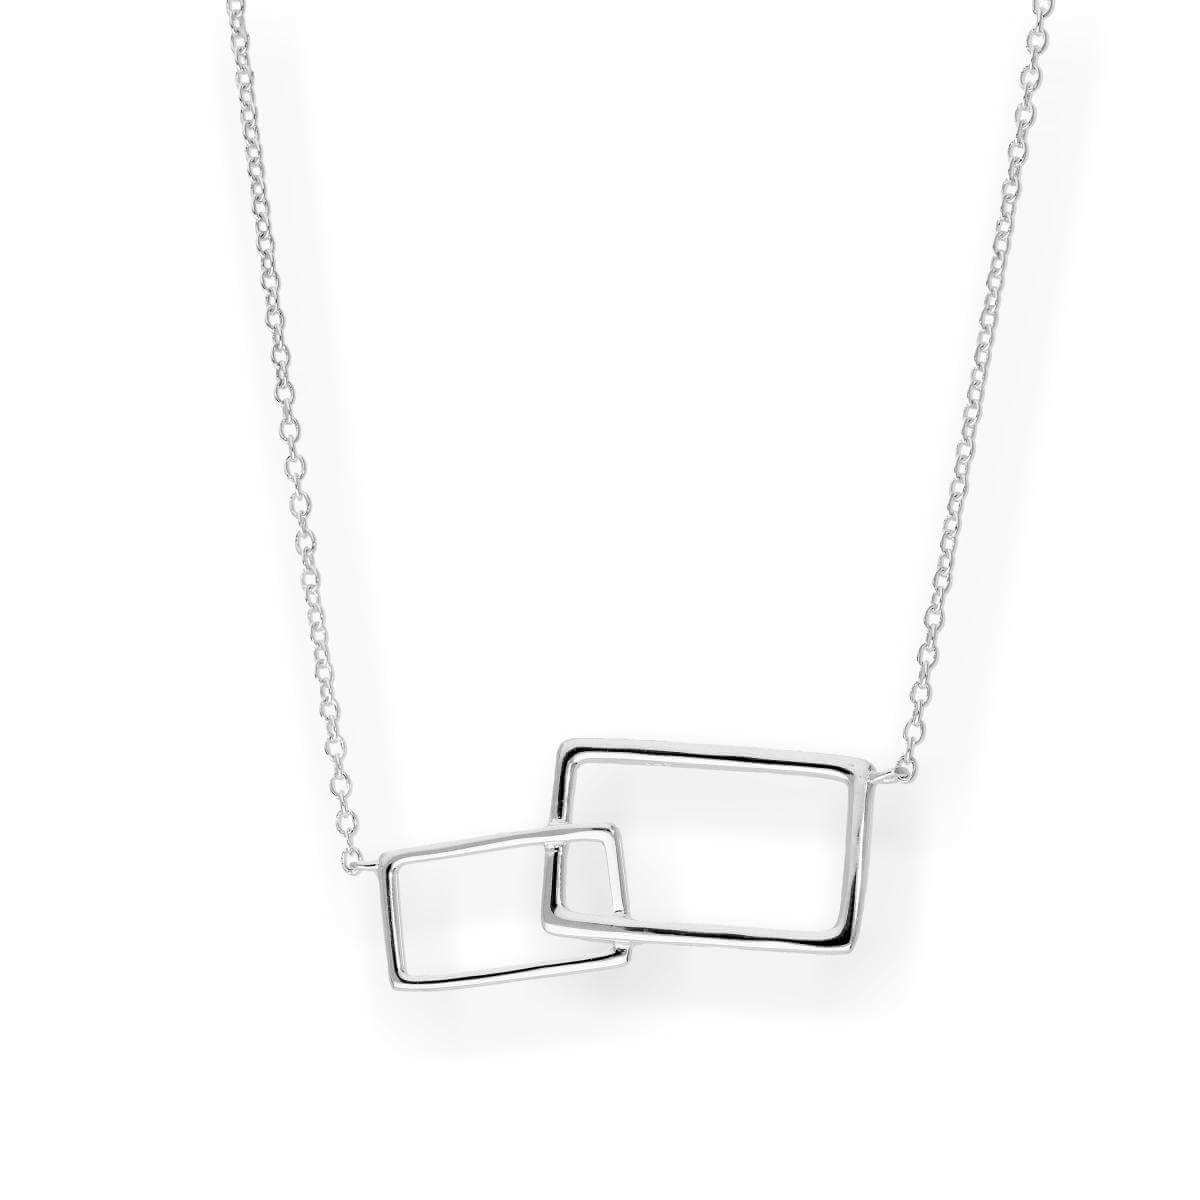 Sterling Silver Interlocking Rectangles Necklace w 18 Inch Chain